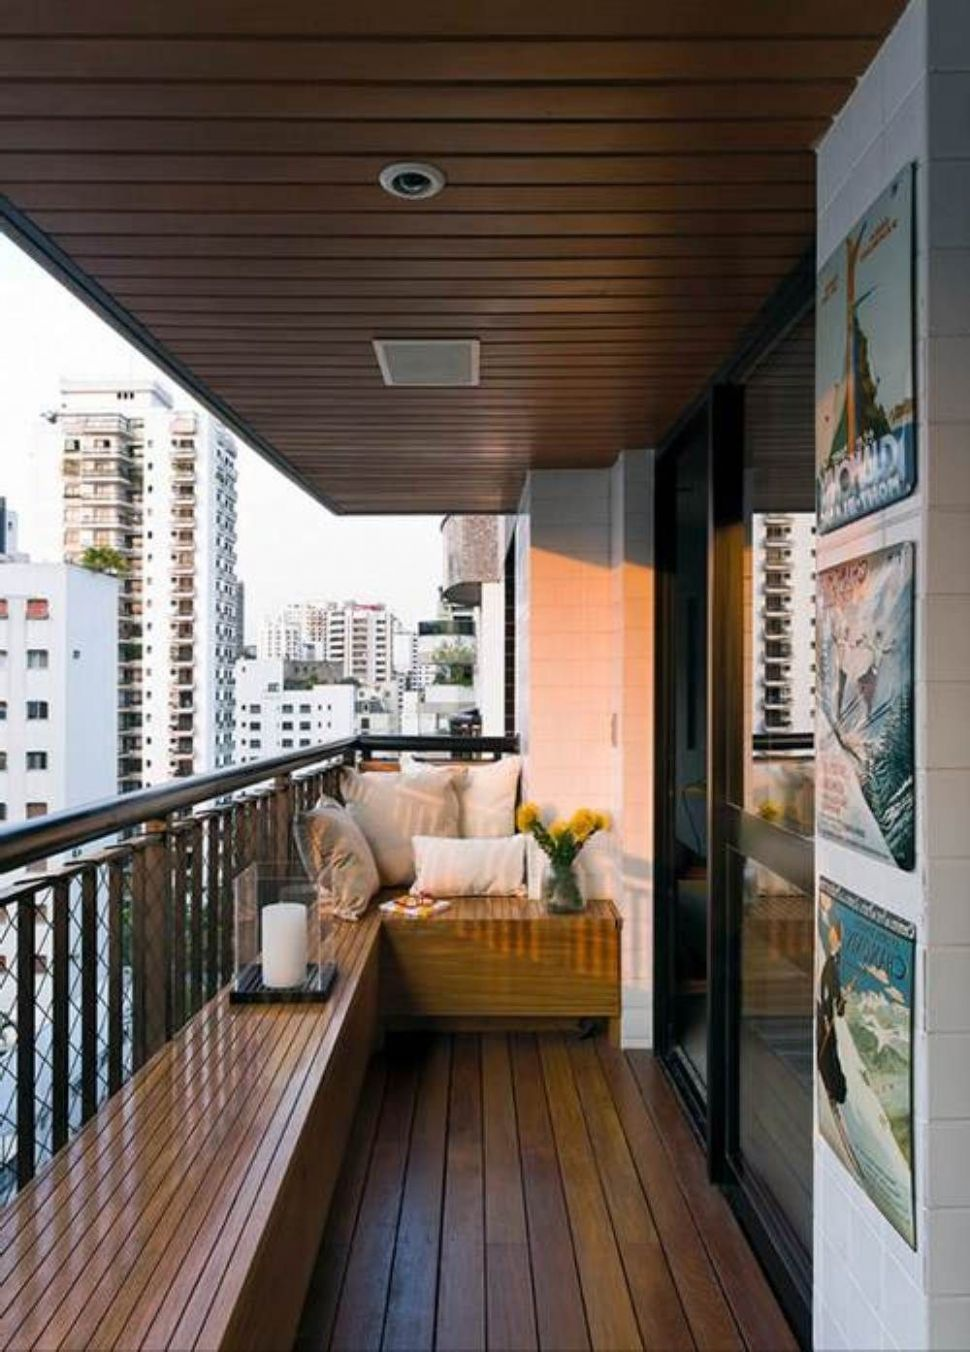 Awesome Ideas to Decorating a Small Balcony | Small balcony design ..